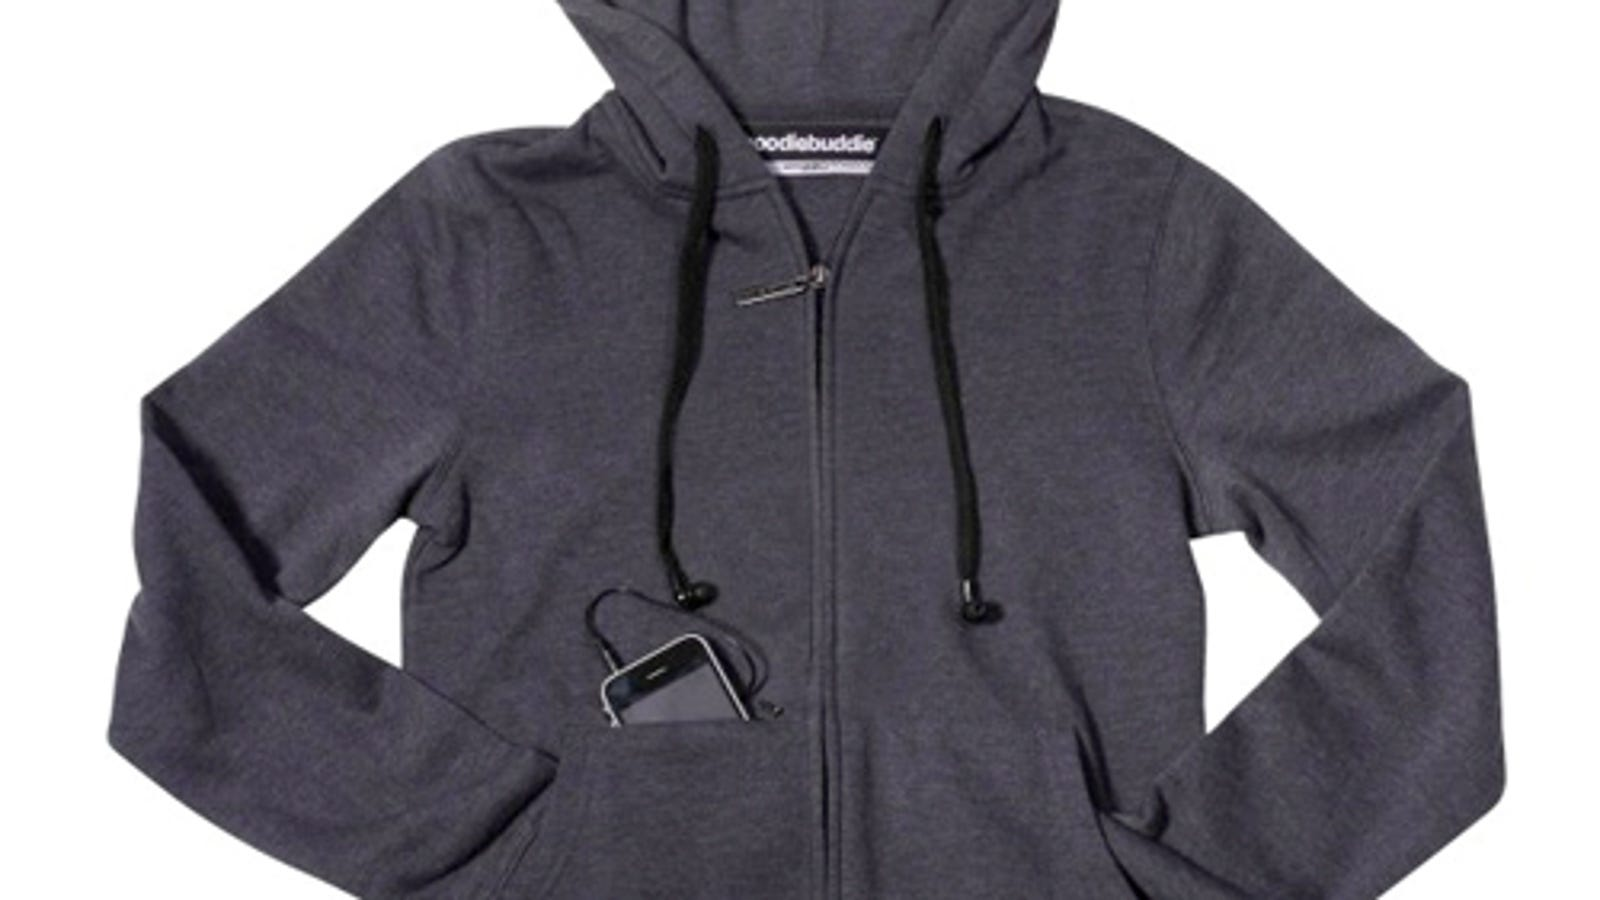 sony earbuds mdr xb50ap - Hoodie With Earbuds Instead of Strings Is Greatest iPod Accessory of All